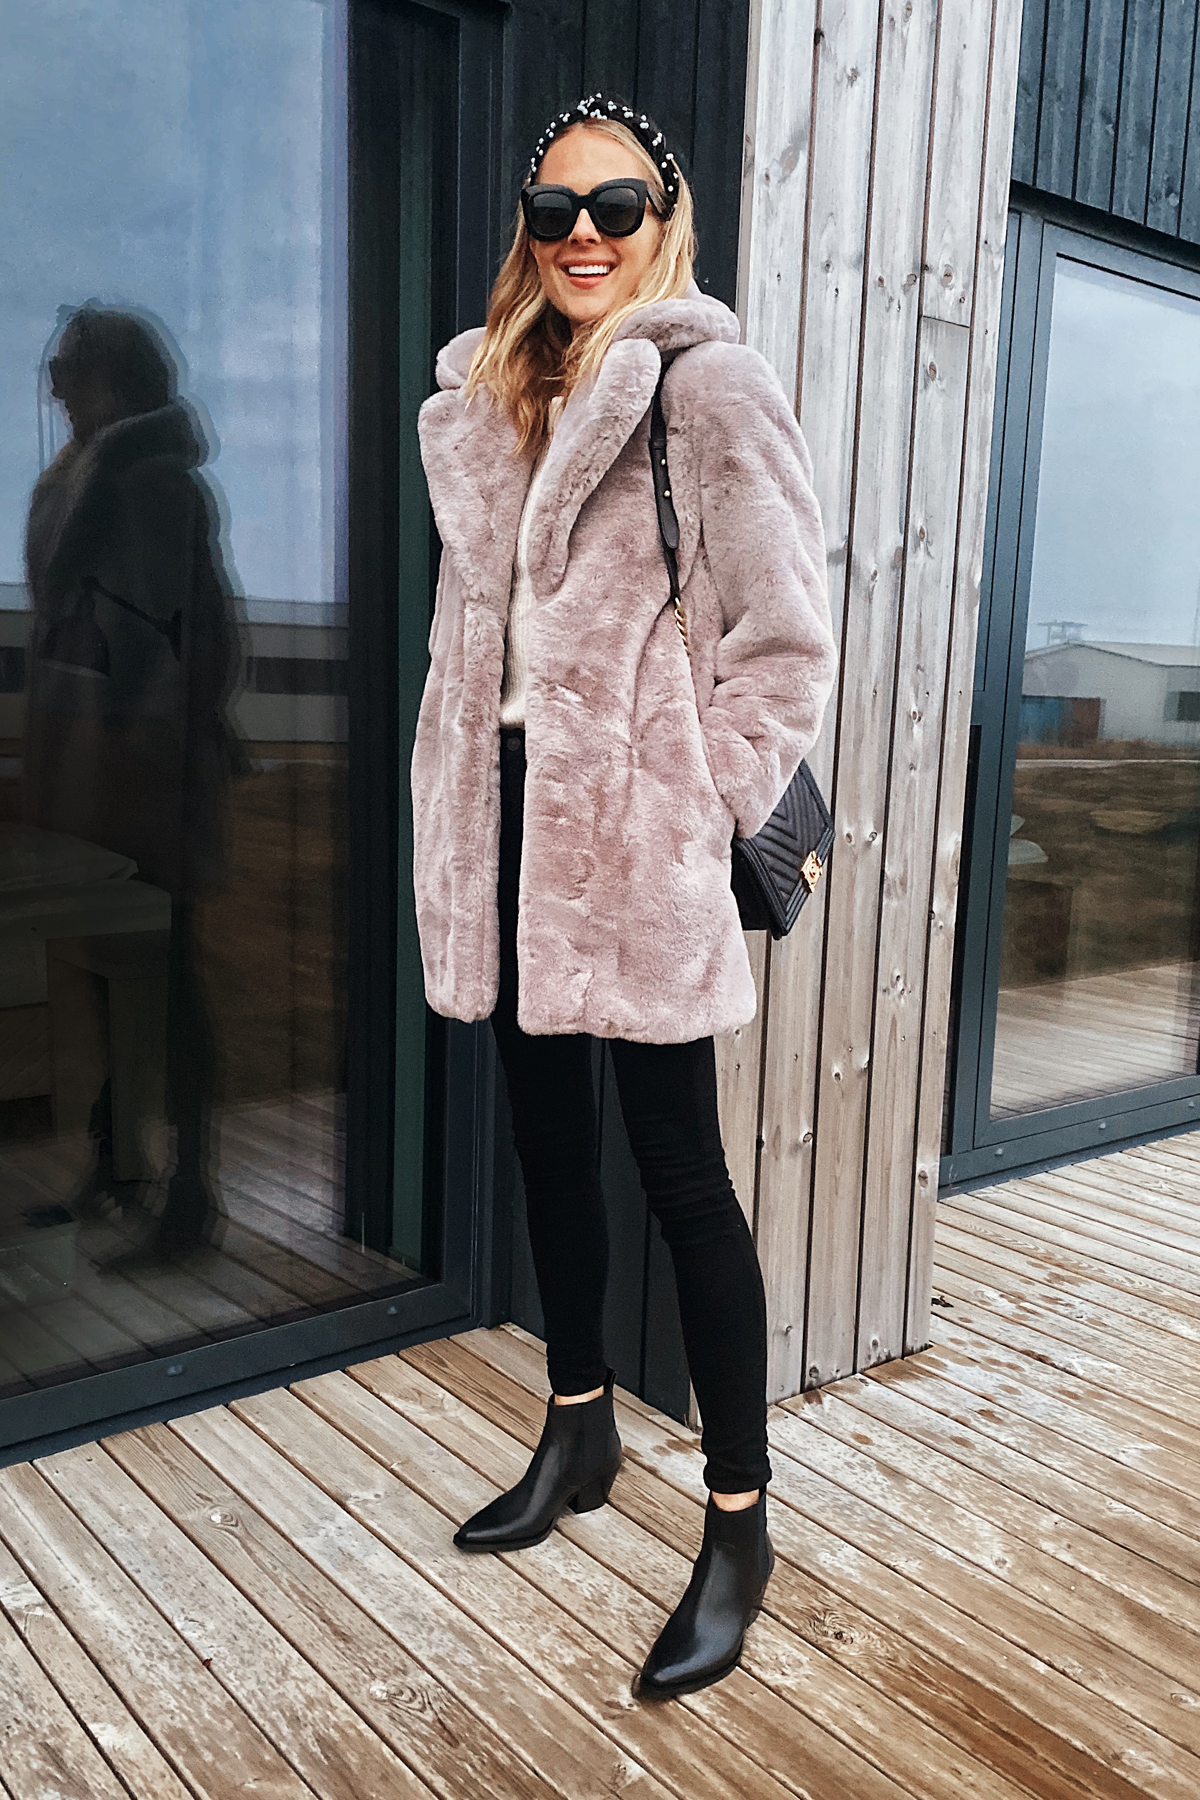 Fashion Jackson Wearing Grey Faux Fur Coat Black Pants Black Boots Iceland Itinerary Travel Guide